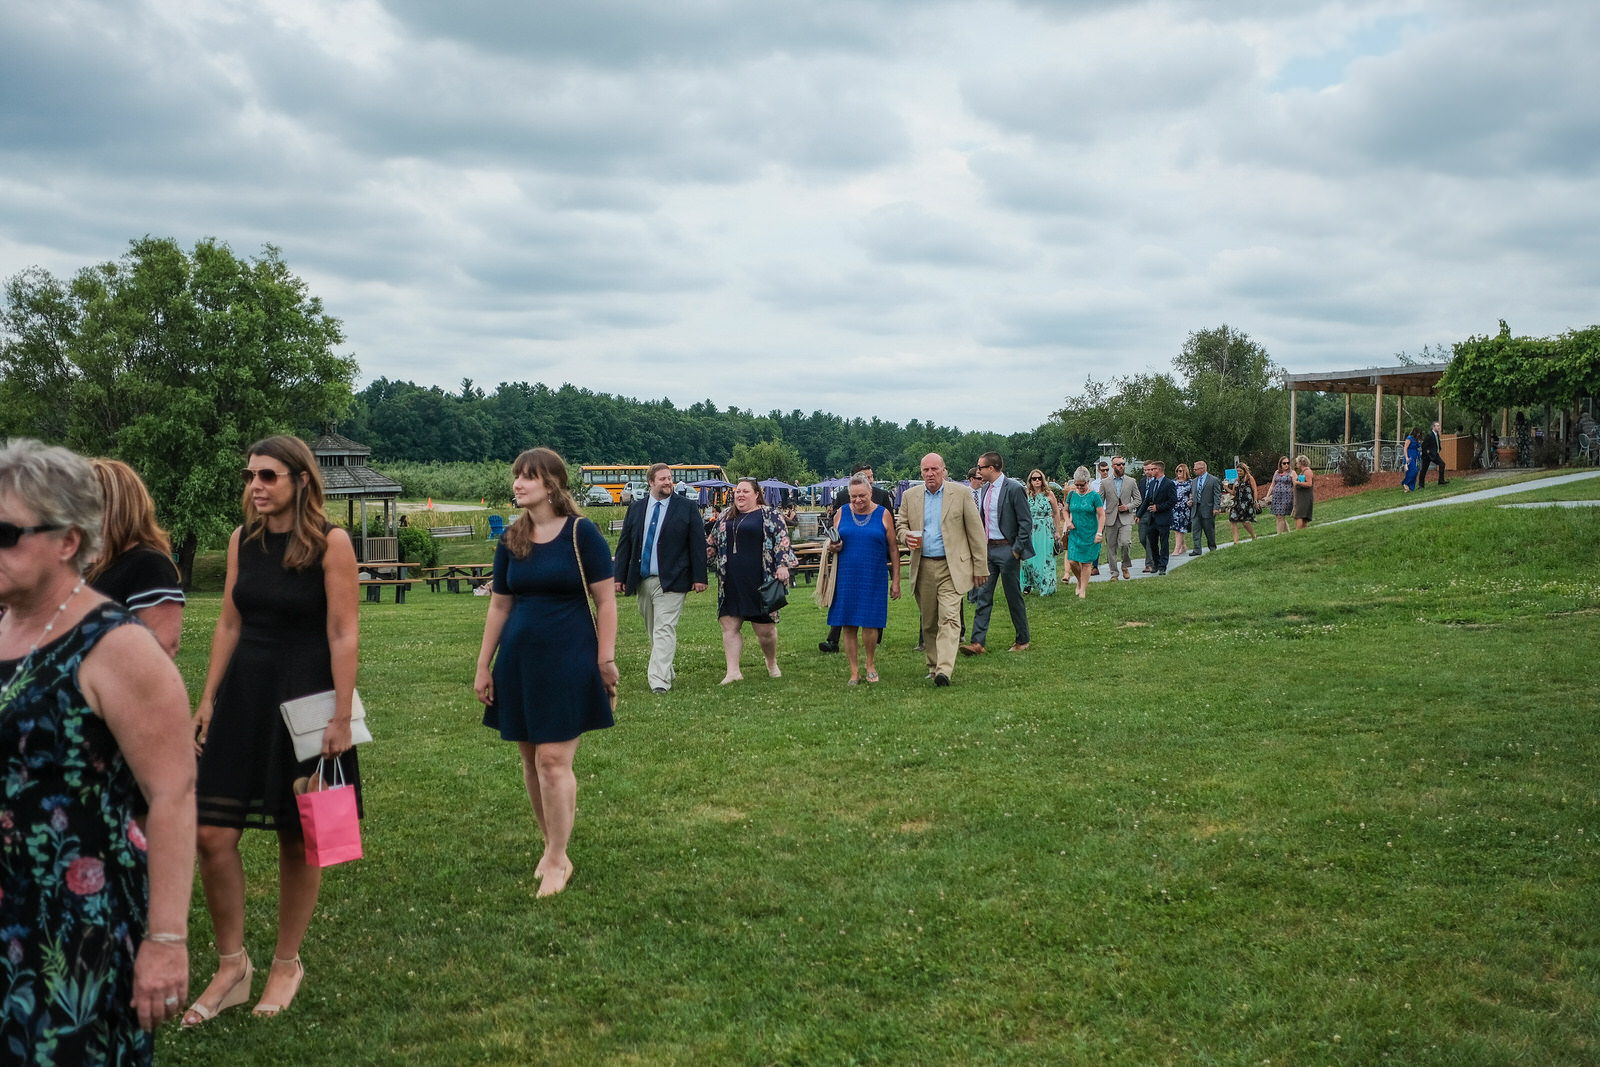 nashoba-valley-winery-wedding-photography-160.jpg